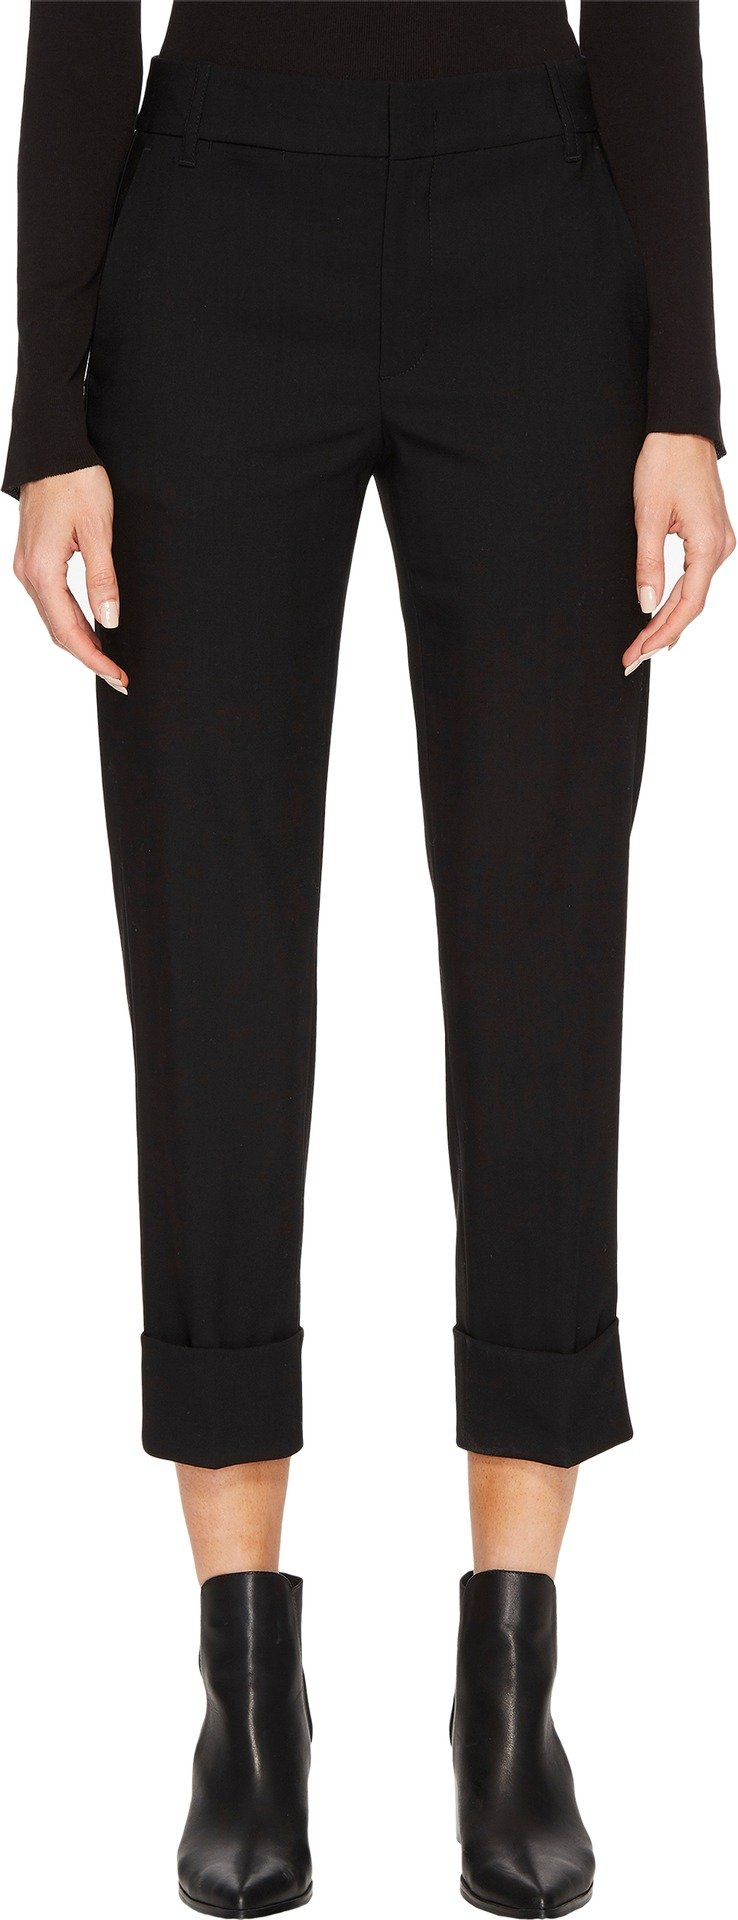 Vince Women's Cuffed Coin Pocket Trousers Black 10